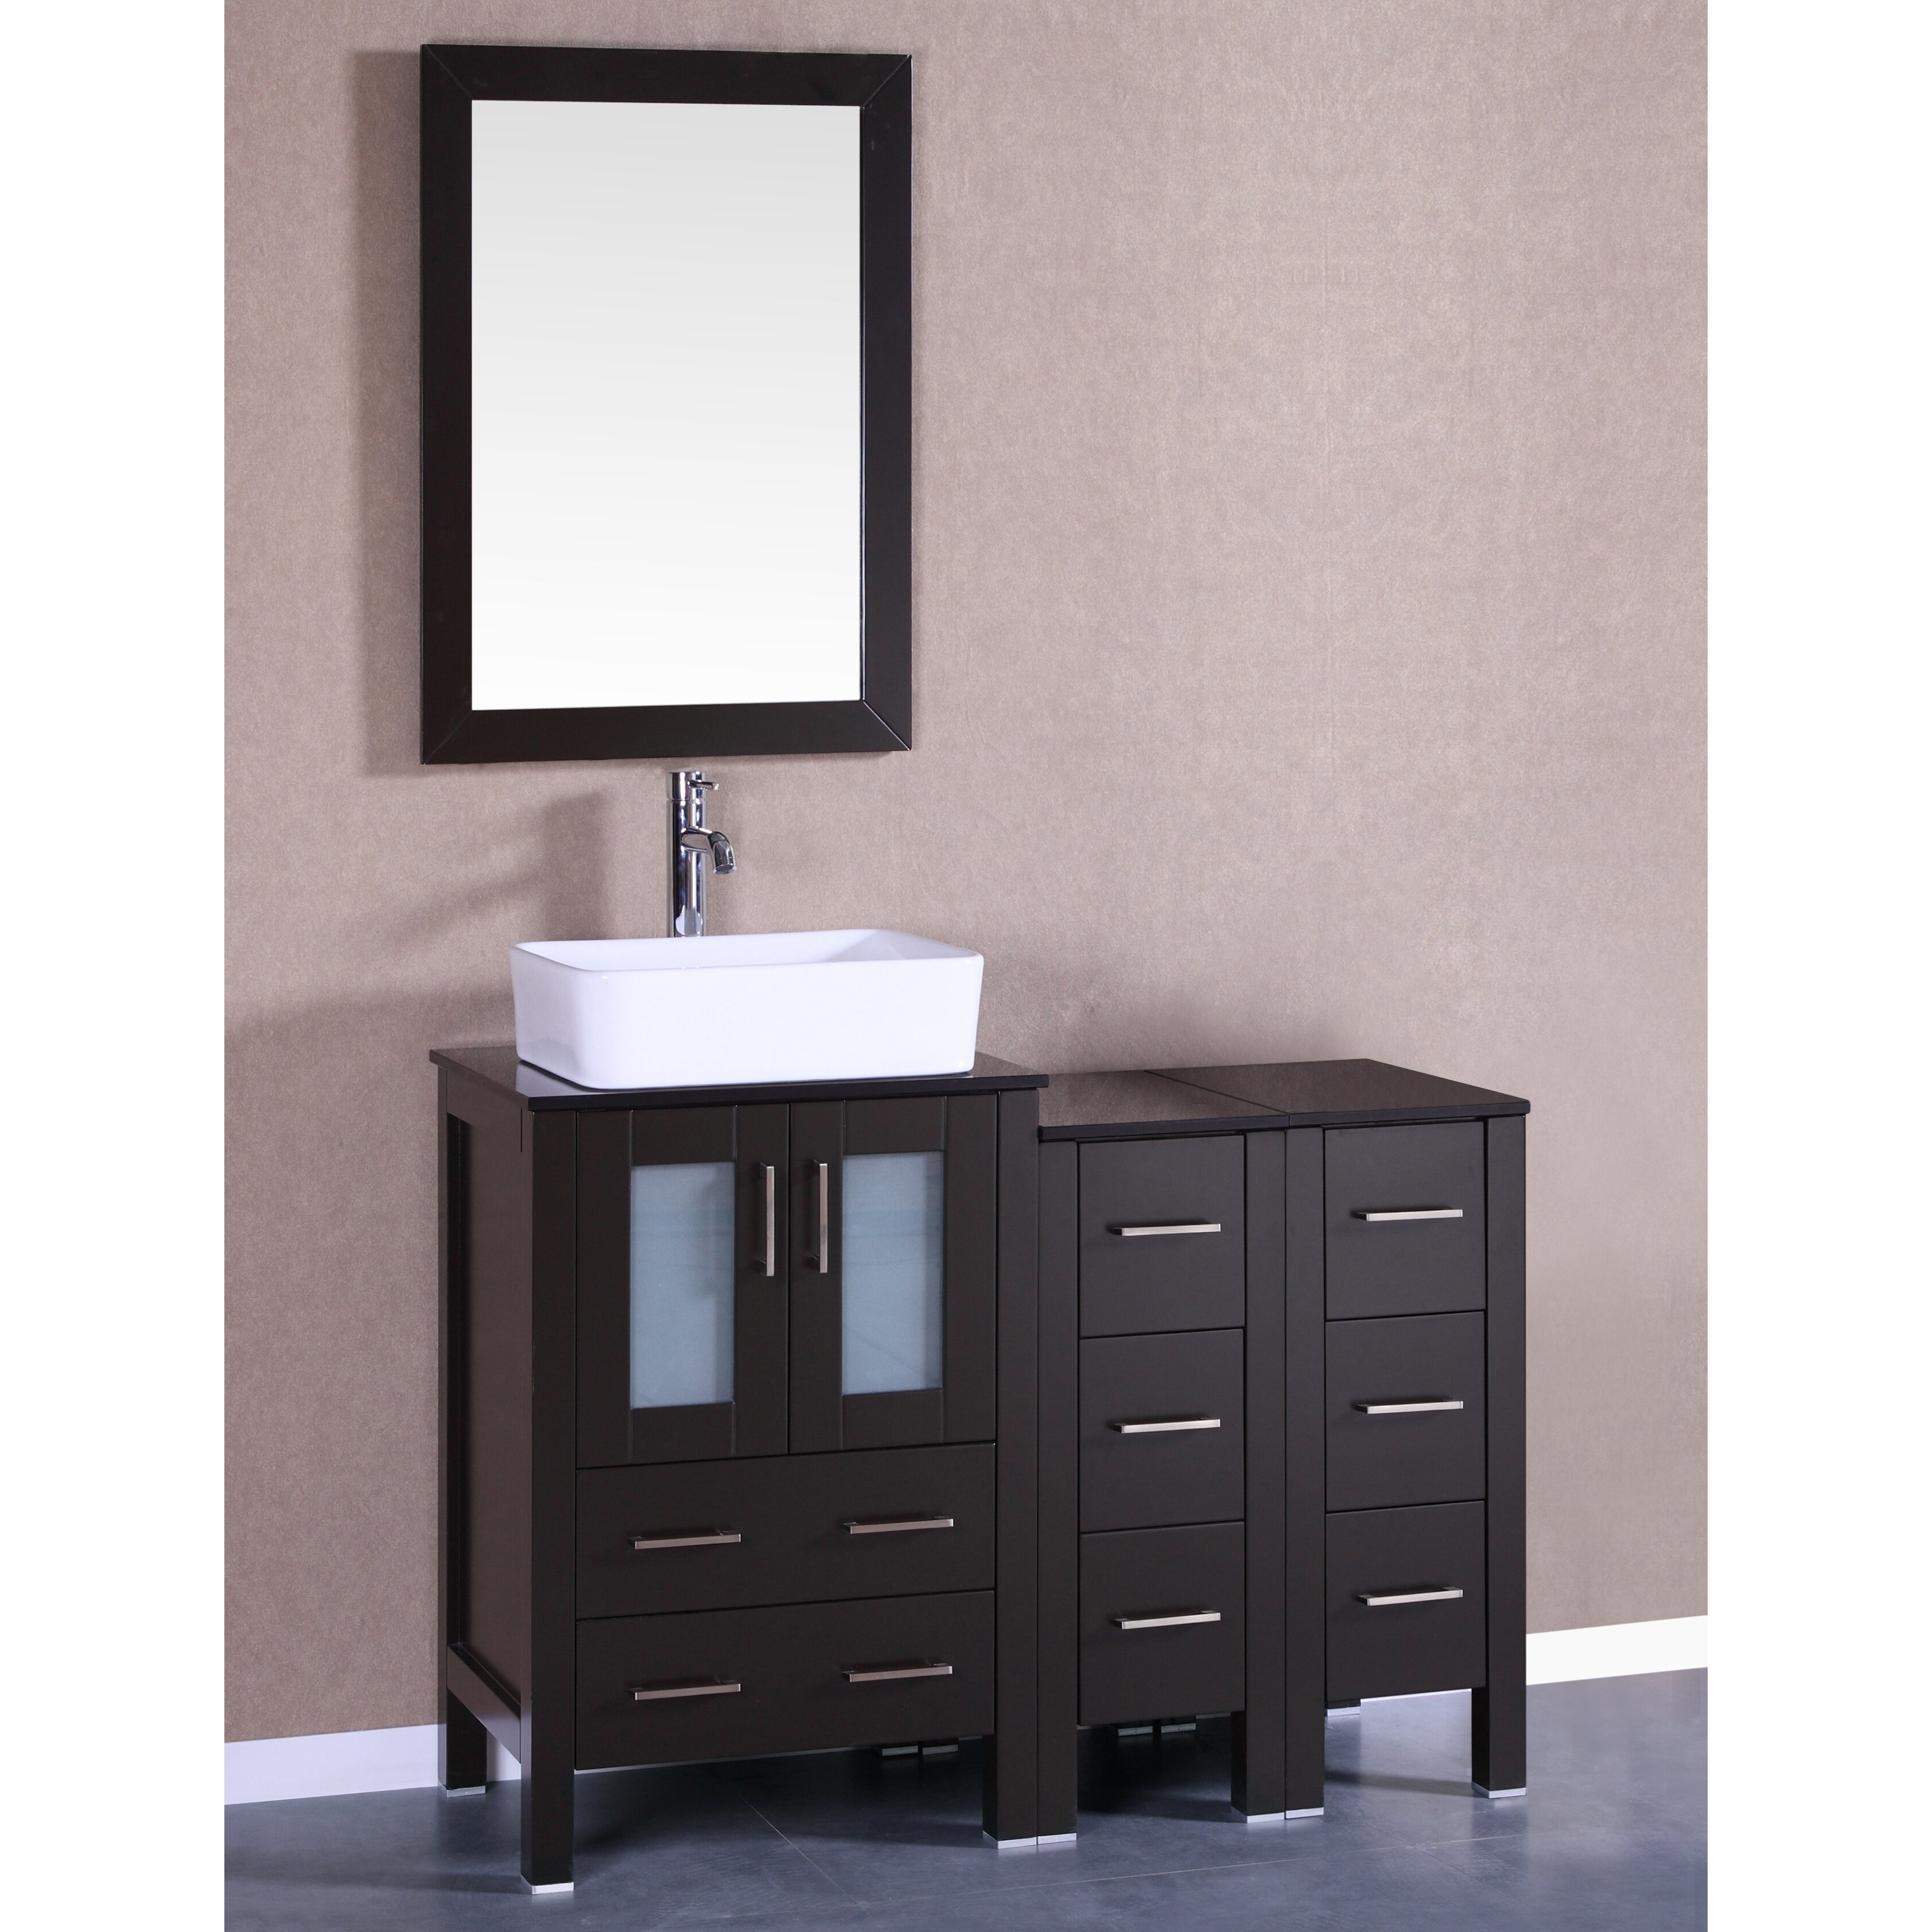 Bathroom cabinets with mirrors specially for las vegas for Bathroom cabinets las vegas